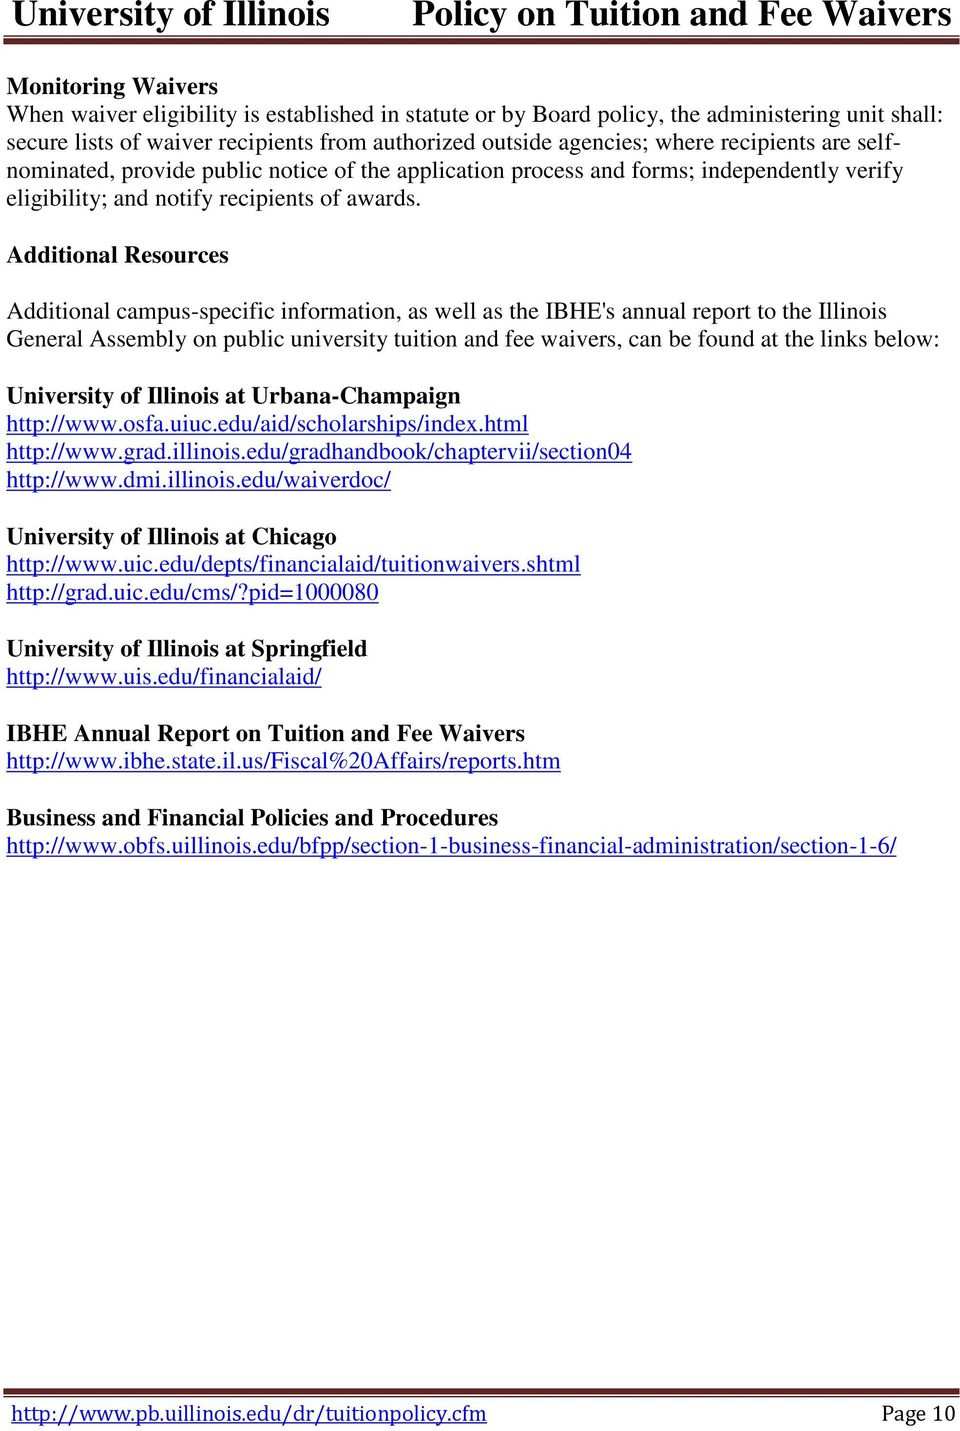 Additional Resources Additional campus-specific information, as well as the IBHE's annual report to the Illinois General Assembly on public university tuition and fee waivers, can be found at the